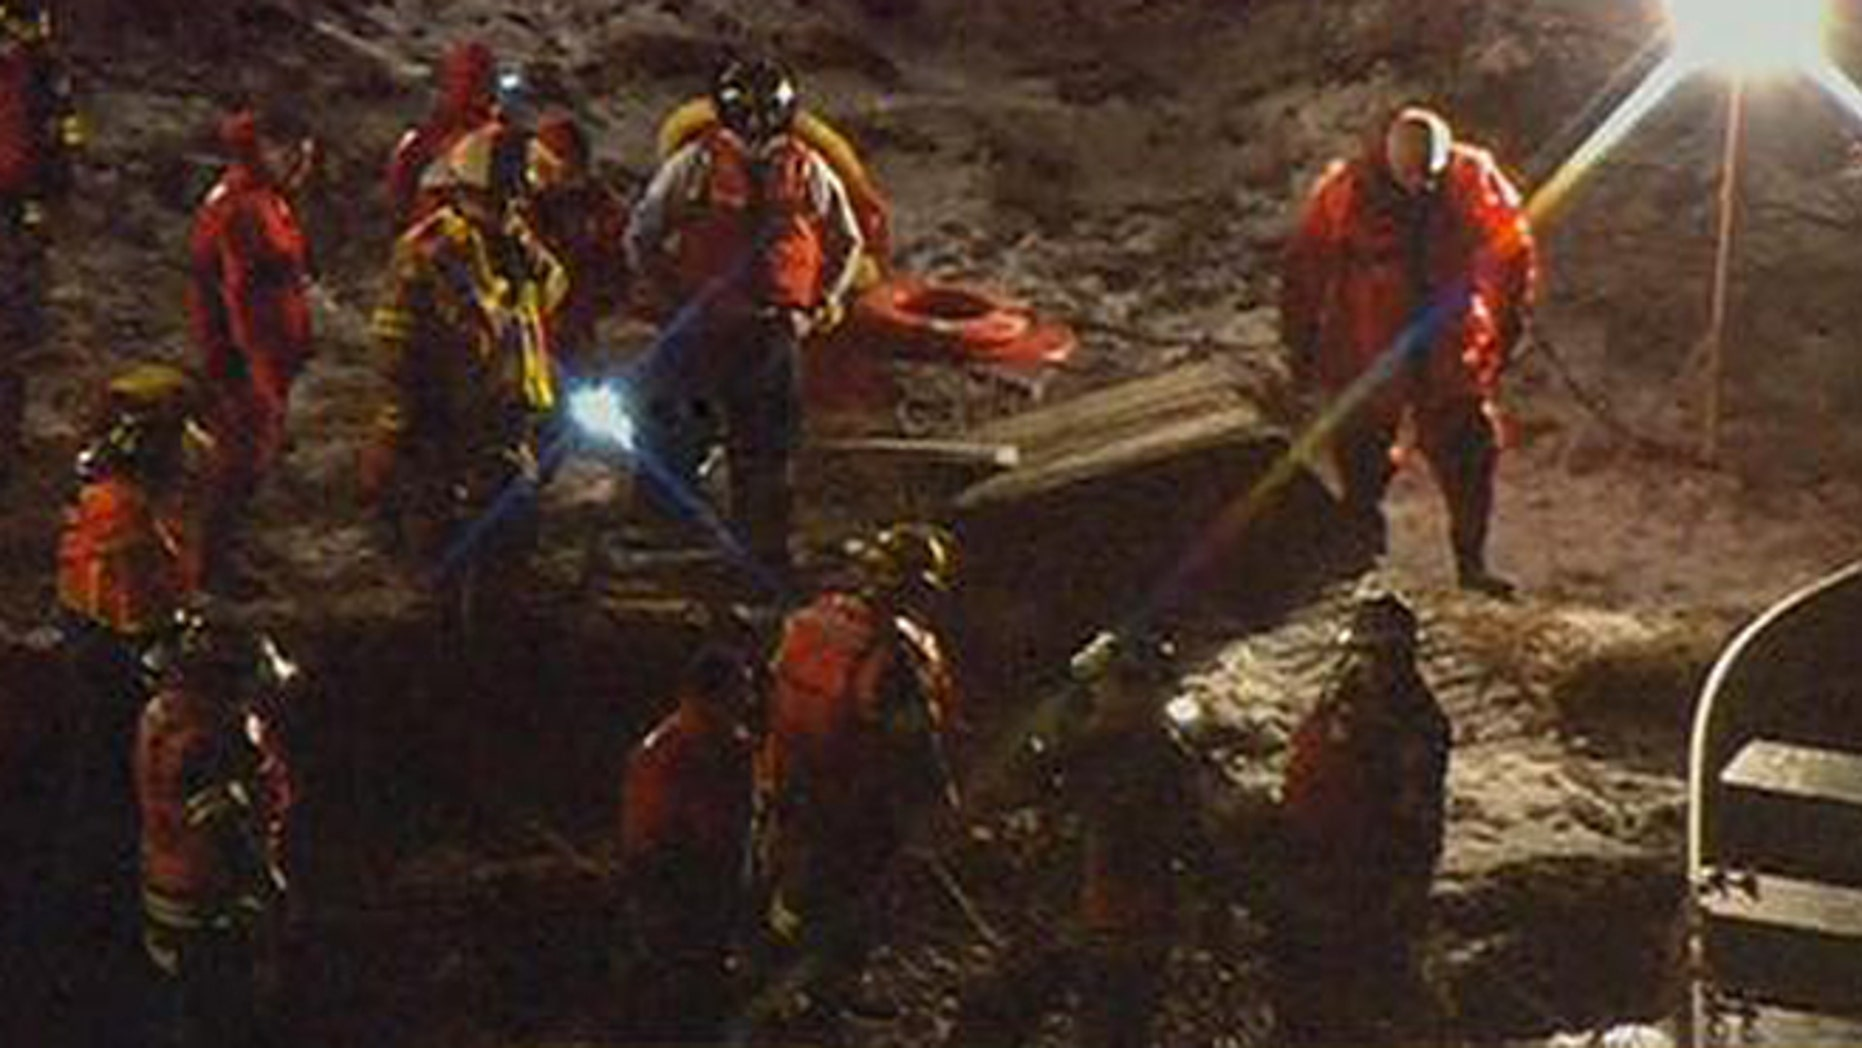 This photo shows the scene of a search of an icy New Jersey lake for two missing teens.